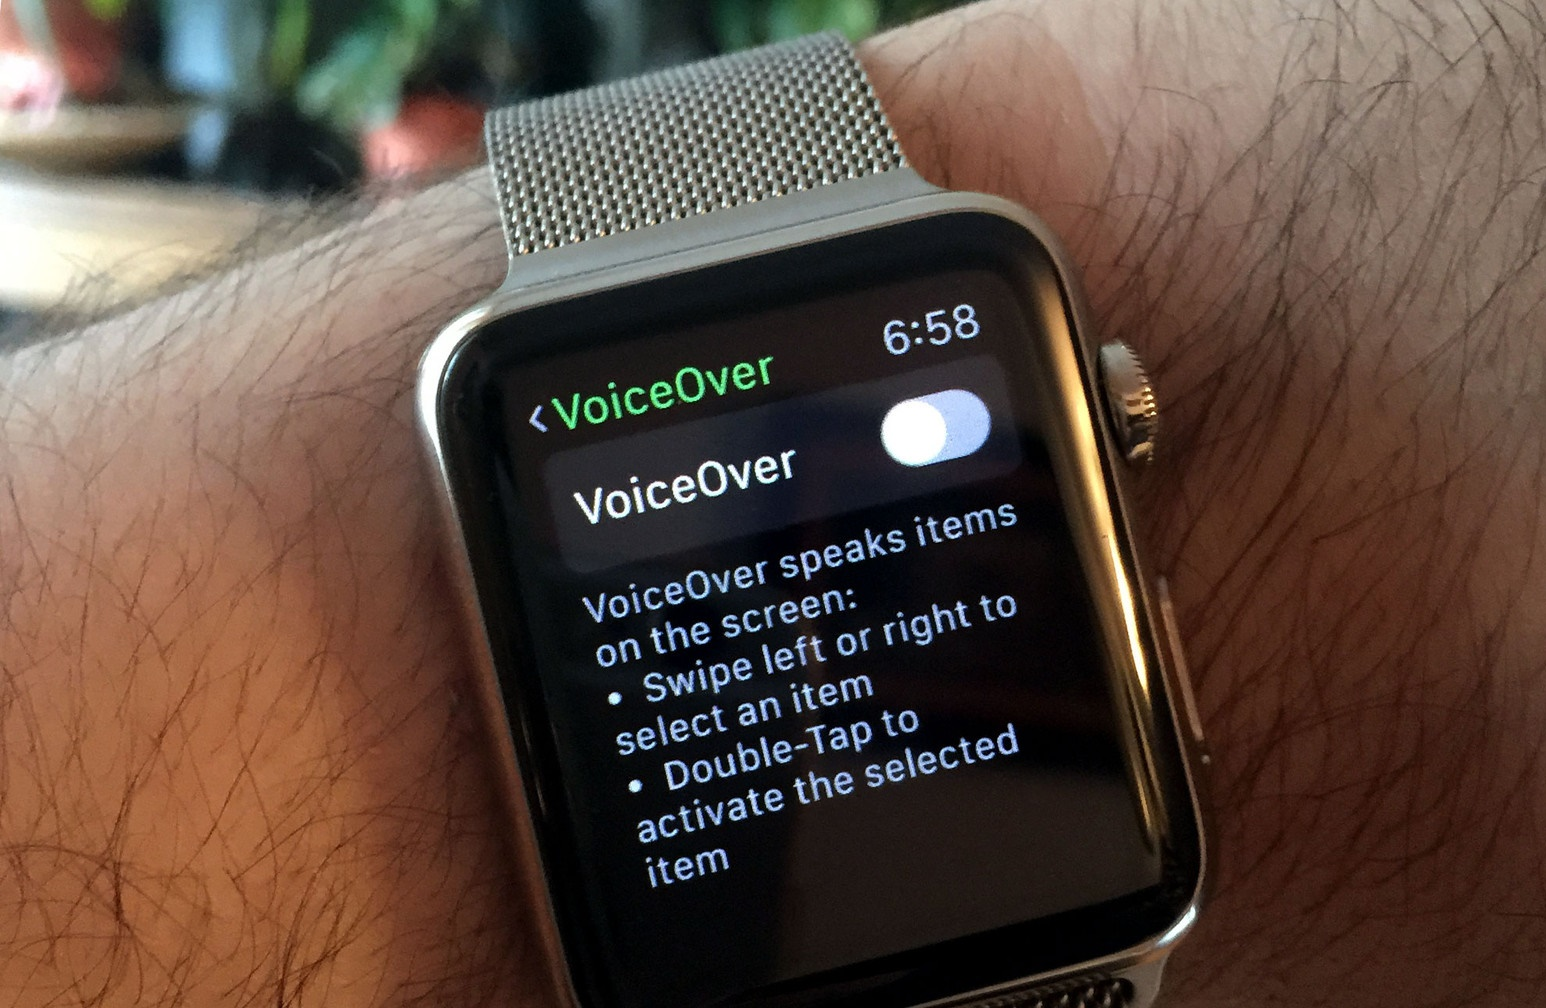 How to setup and use VoiceOver on Apple Watch